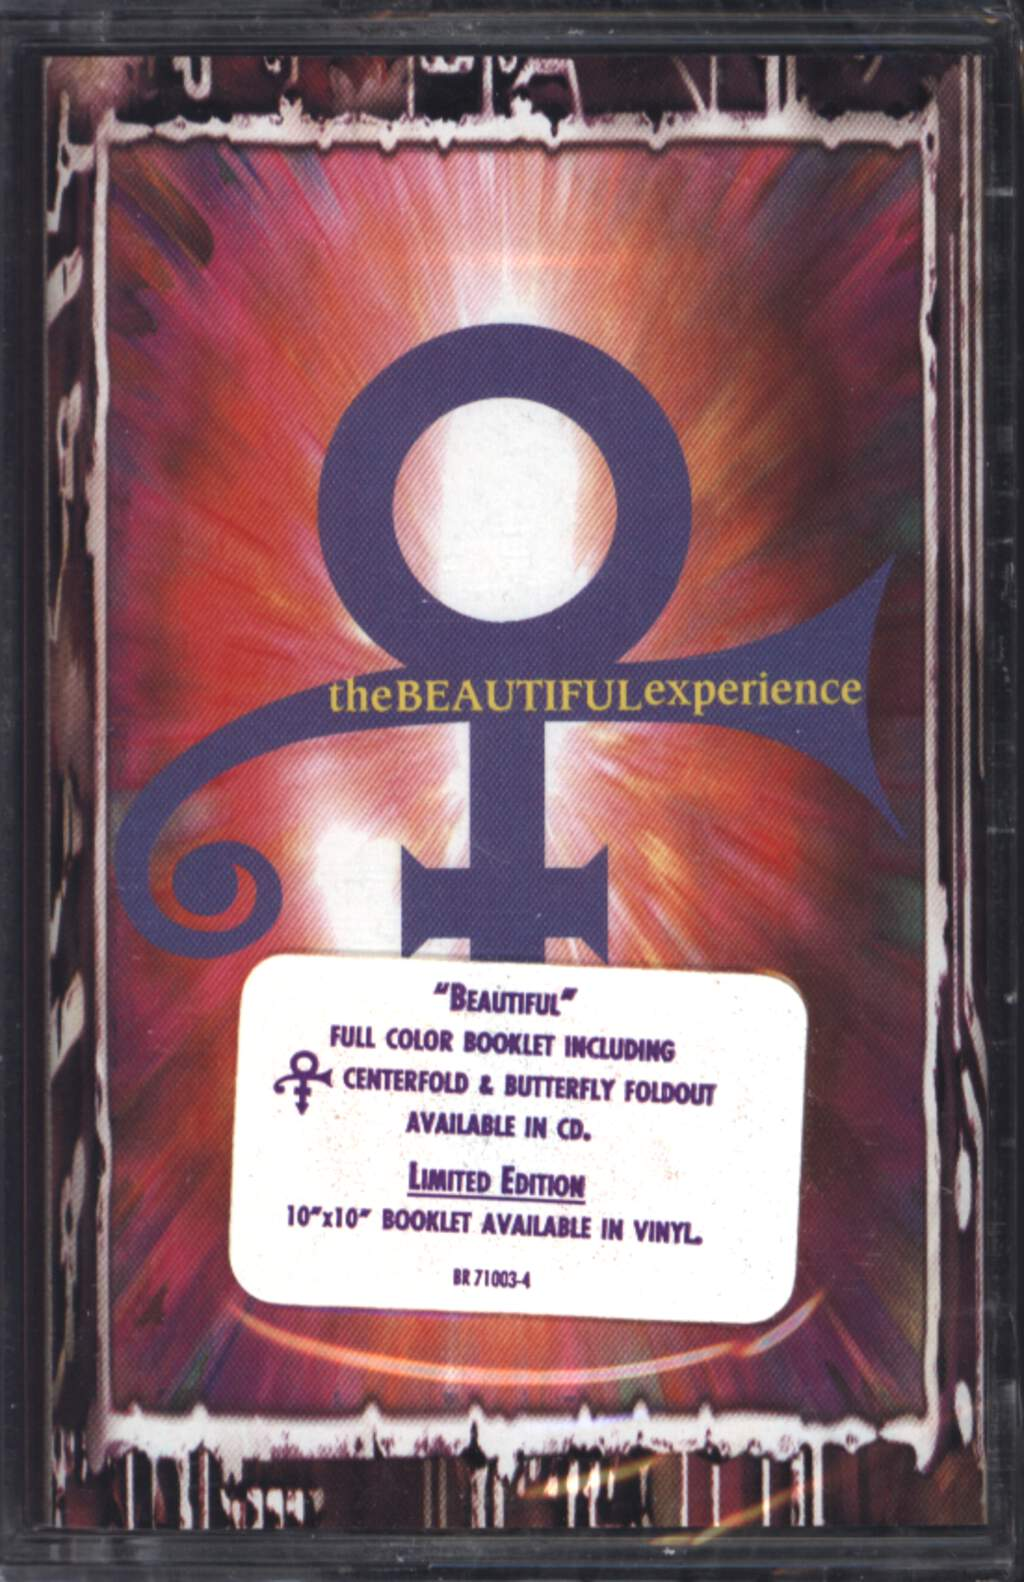 The Artist (Formerly Known As Prince): The Beautiful Experience, Compact Cassette